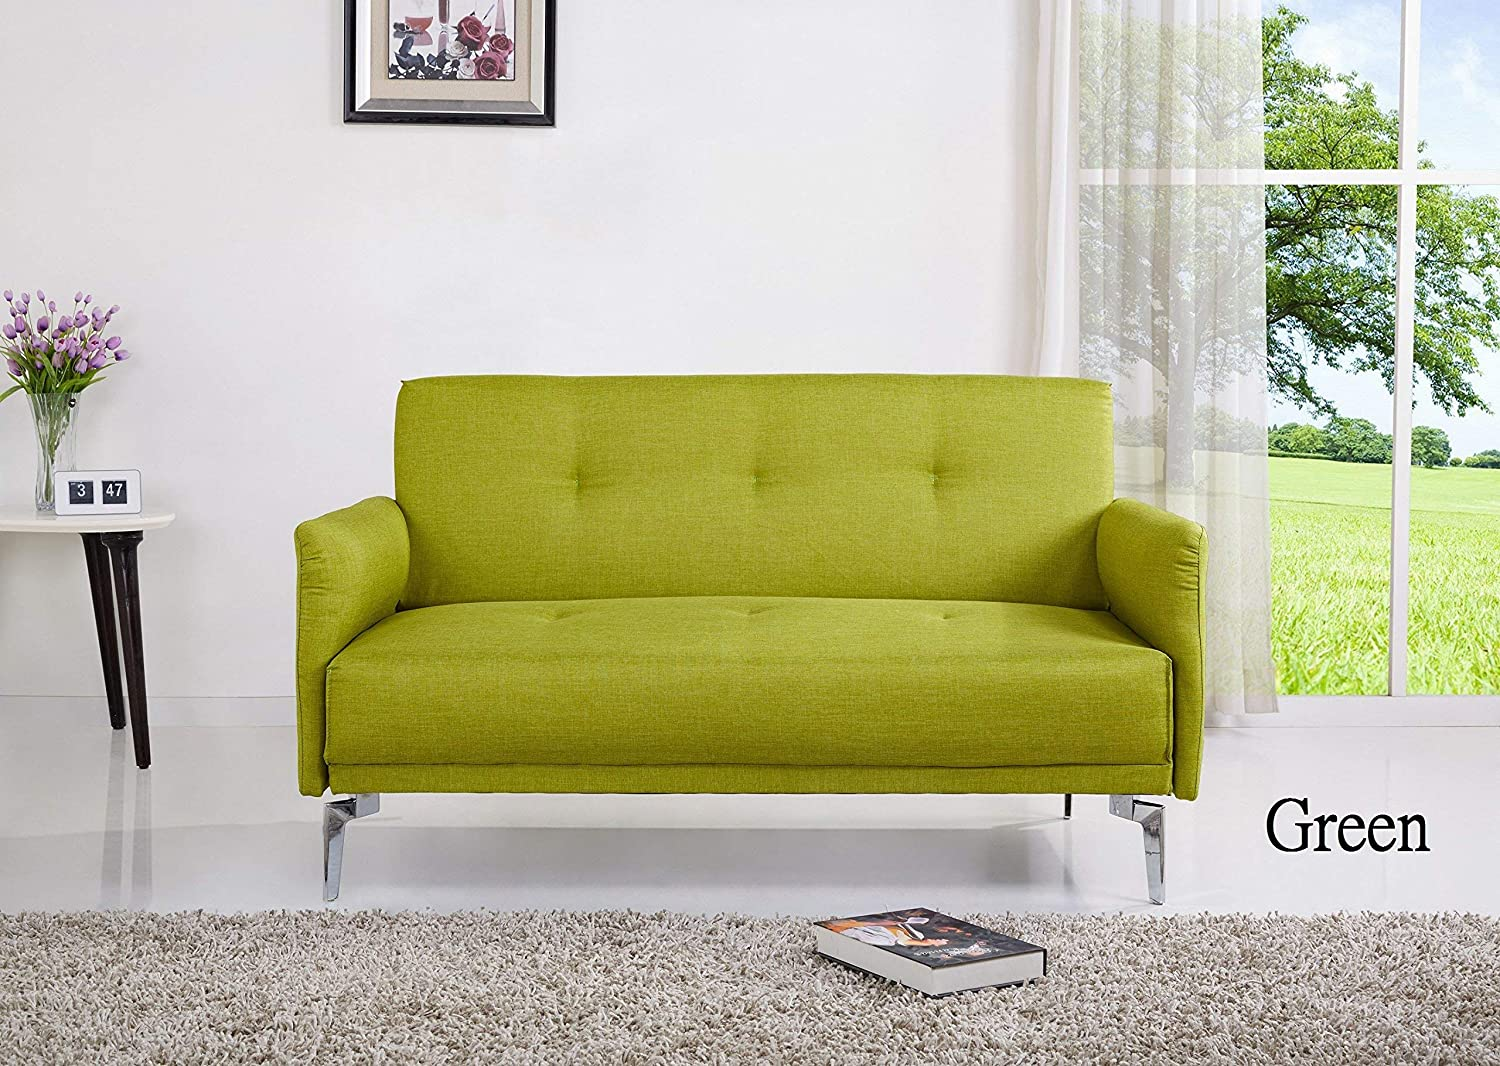 Amazon com container furniture direct s5050 emma collection modern fabric upholstered 2 person living room loveseat green kitchen dining